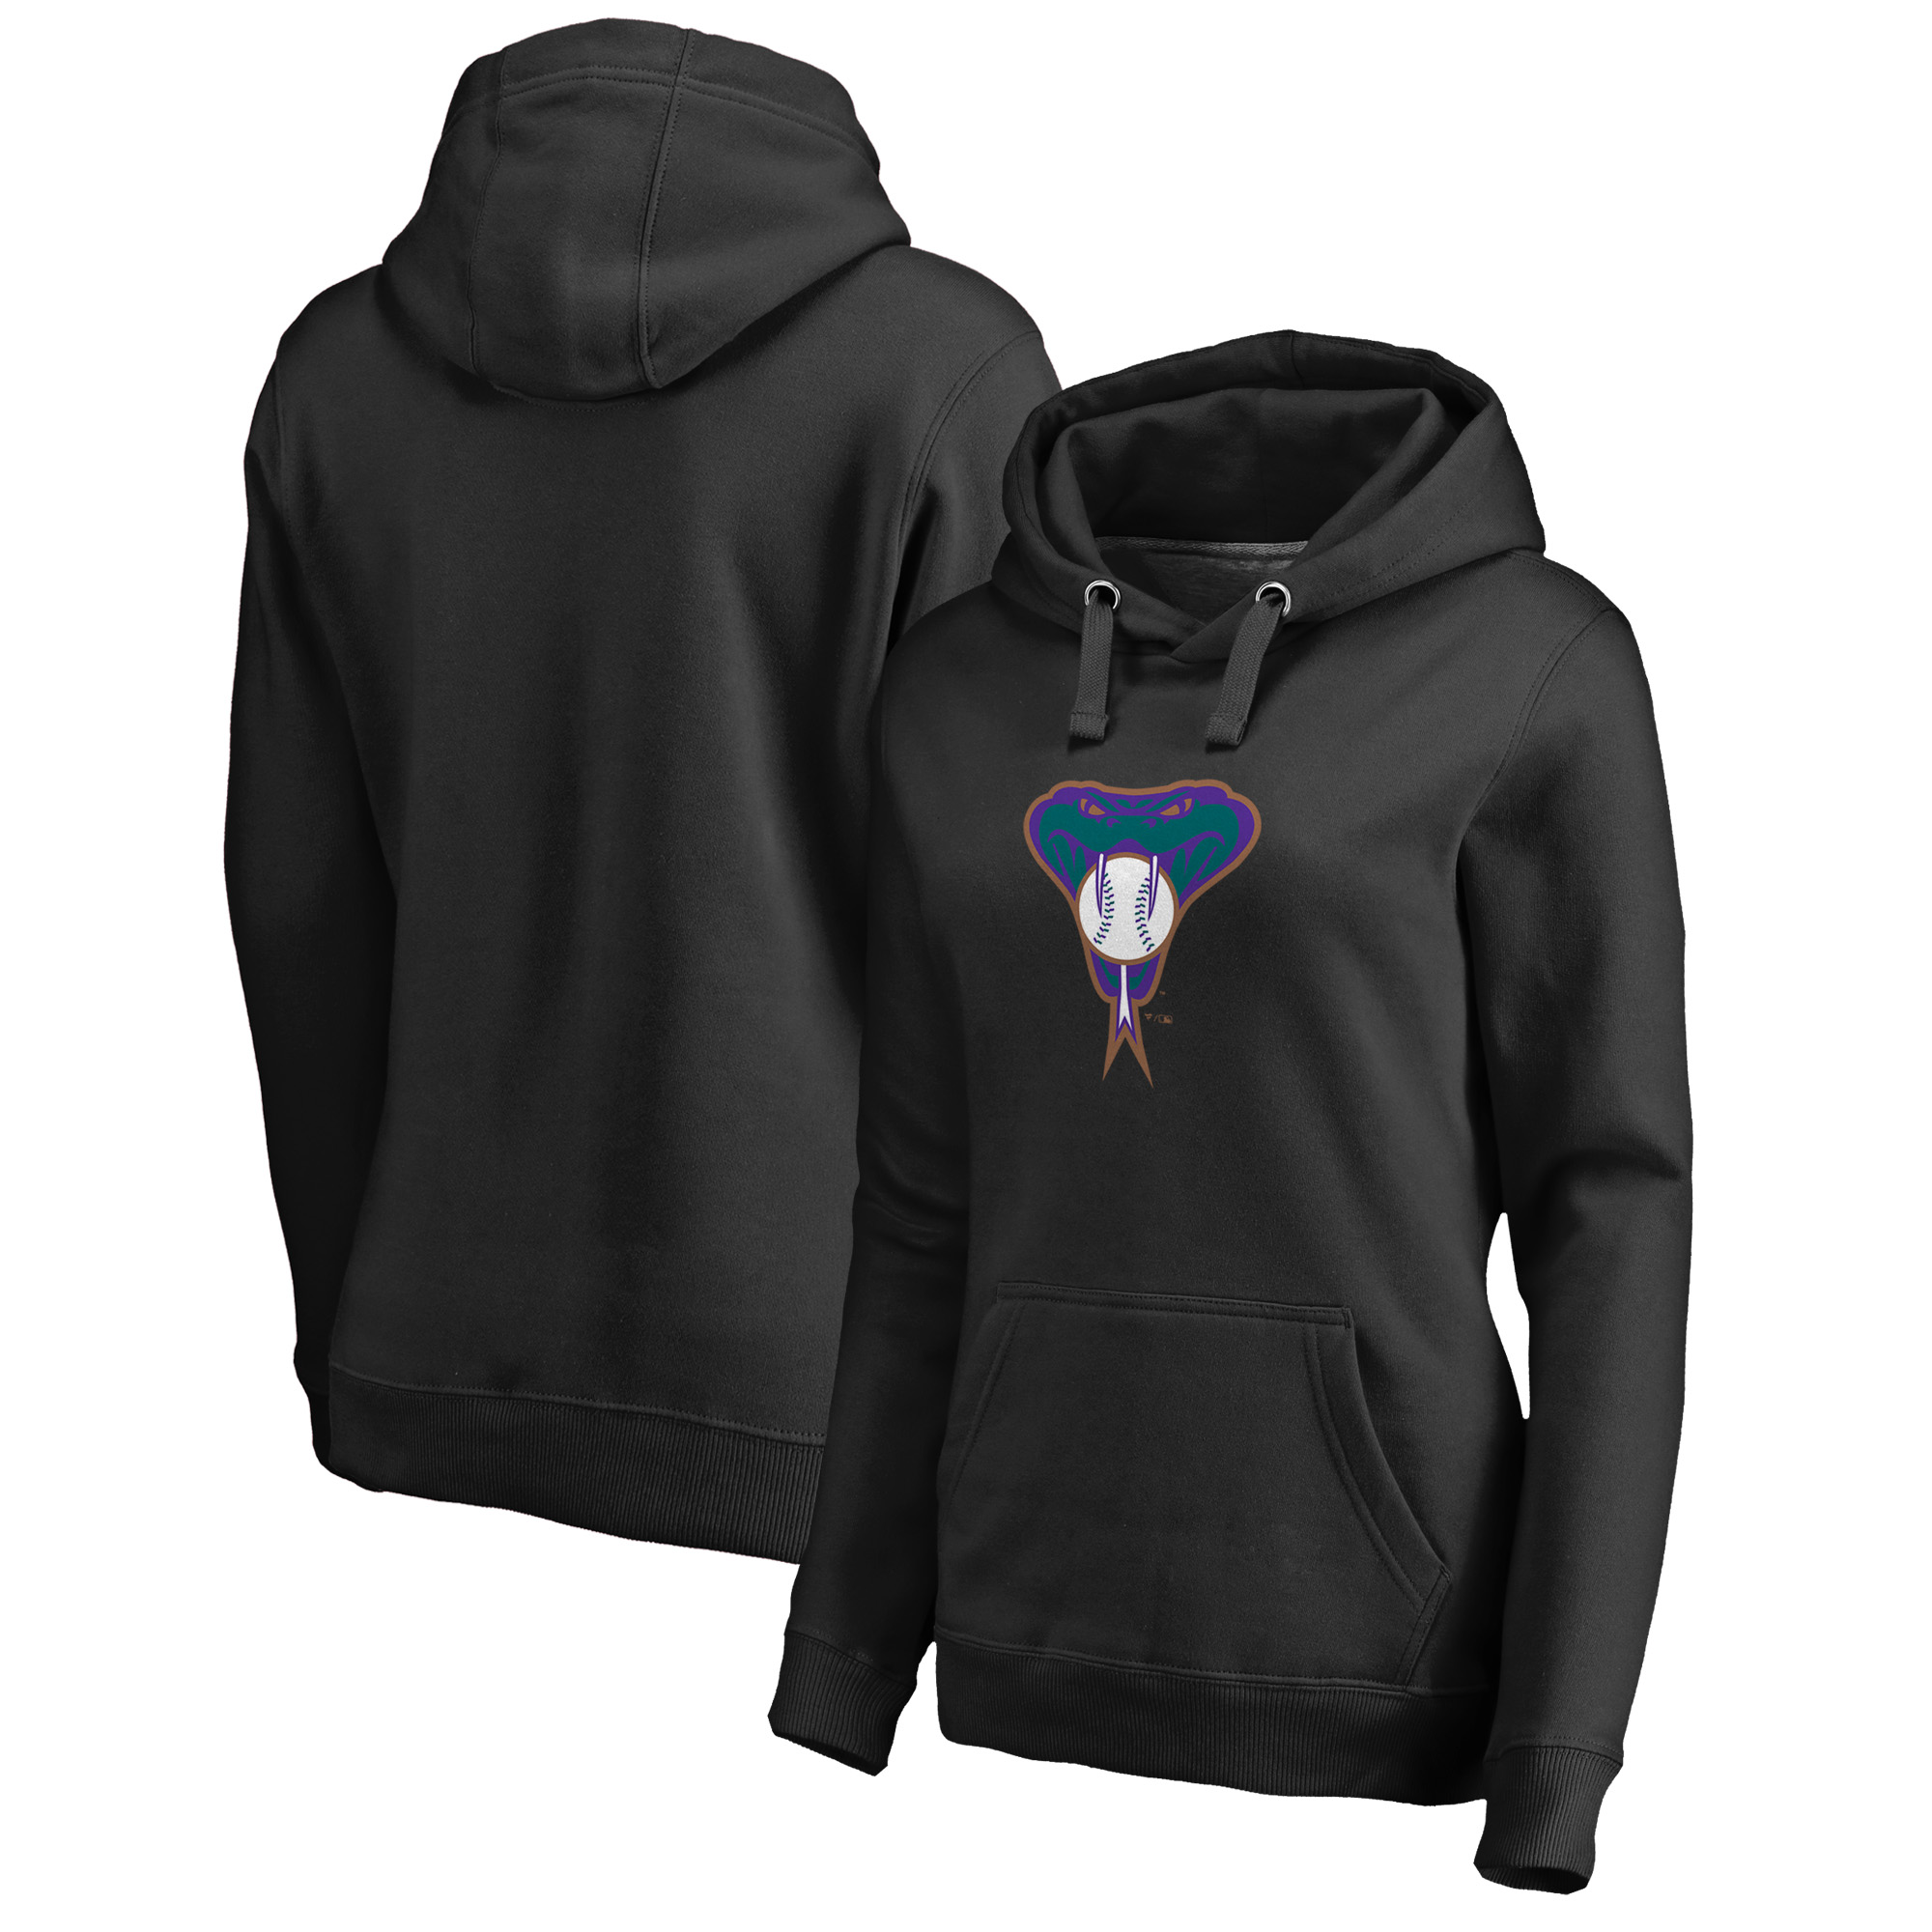 Arizona Diamondbacks Fanatics Branded Women's Cooperstown Collection Huntington Pullover Hoodie - Black